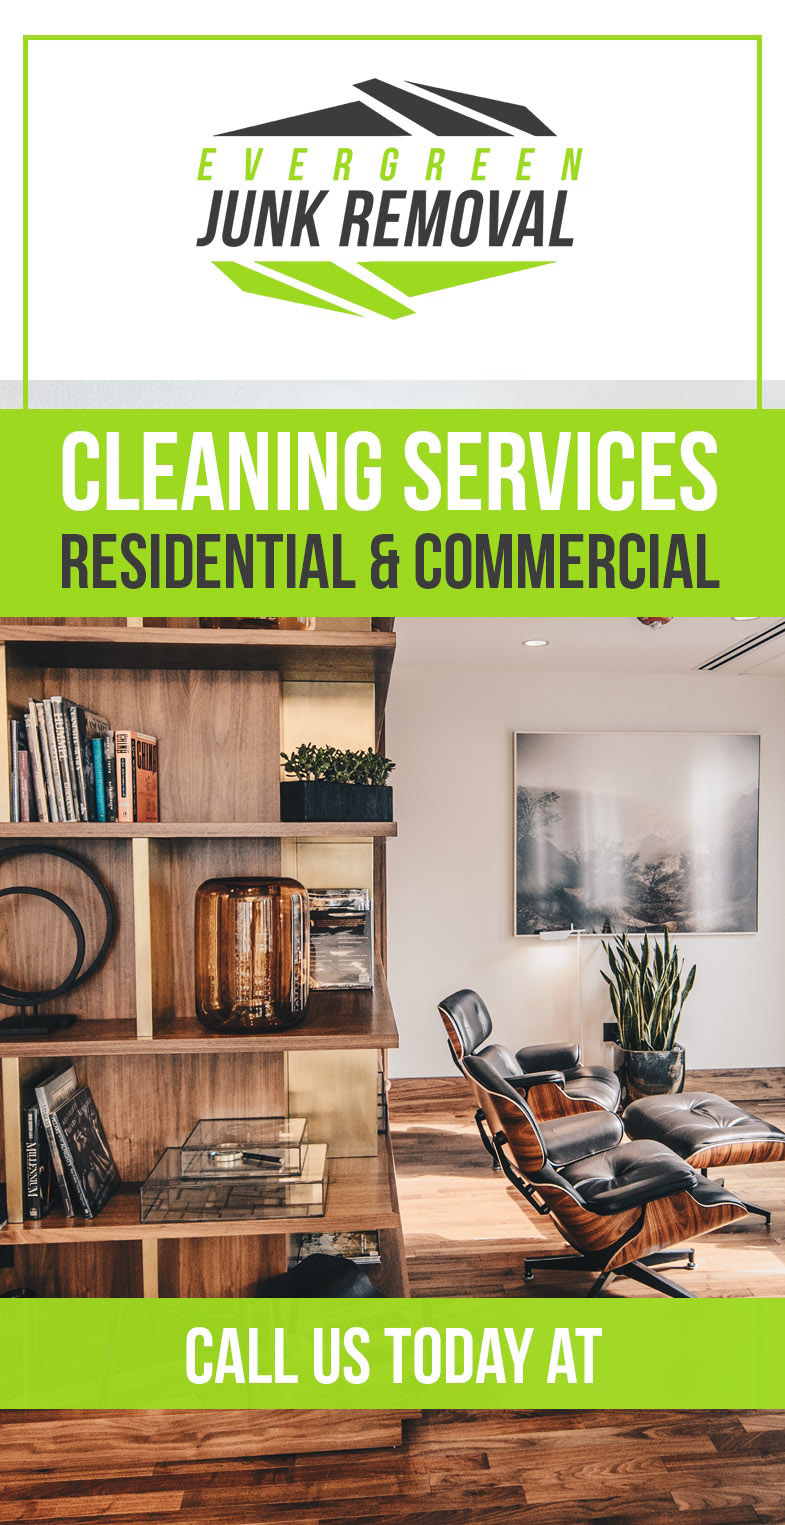 Pine Island Ridge Commercial Cleaning